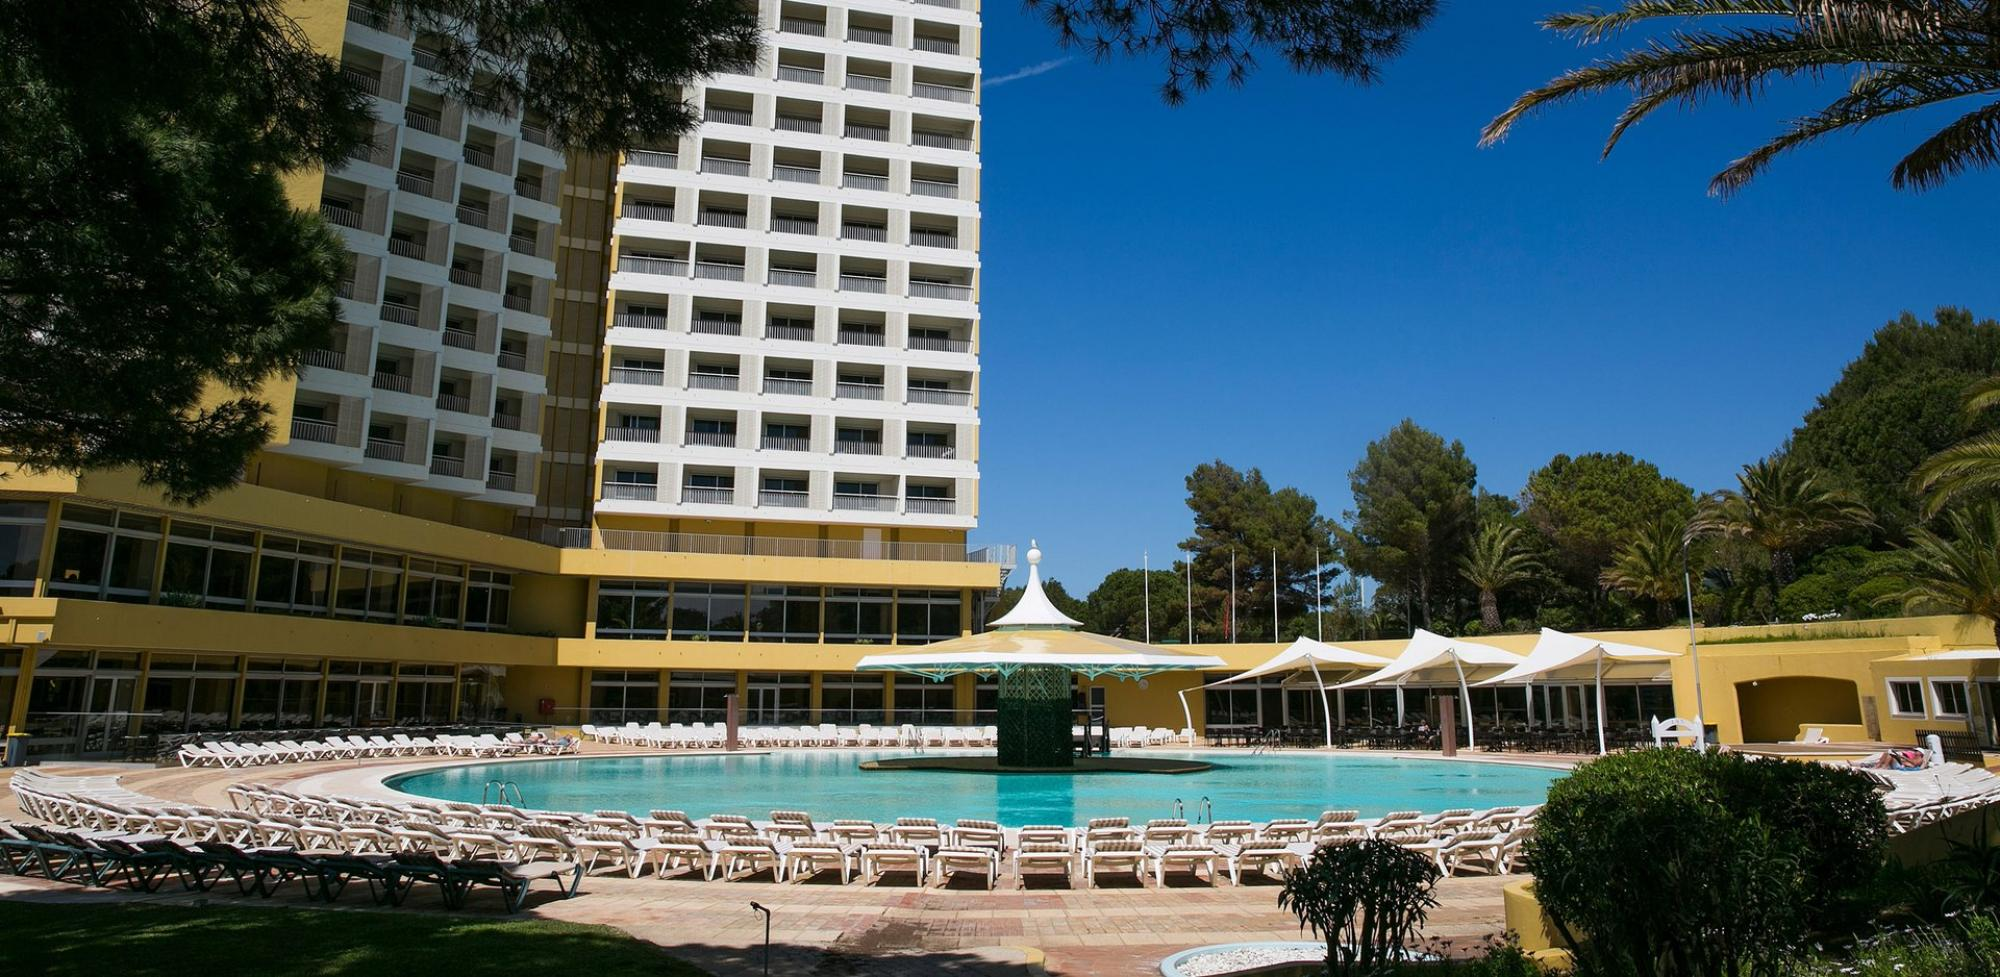 The Pestana Delfim Hotel's impressive outdoor pool situated in vibrant Algarve.